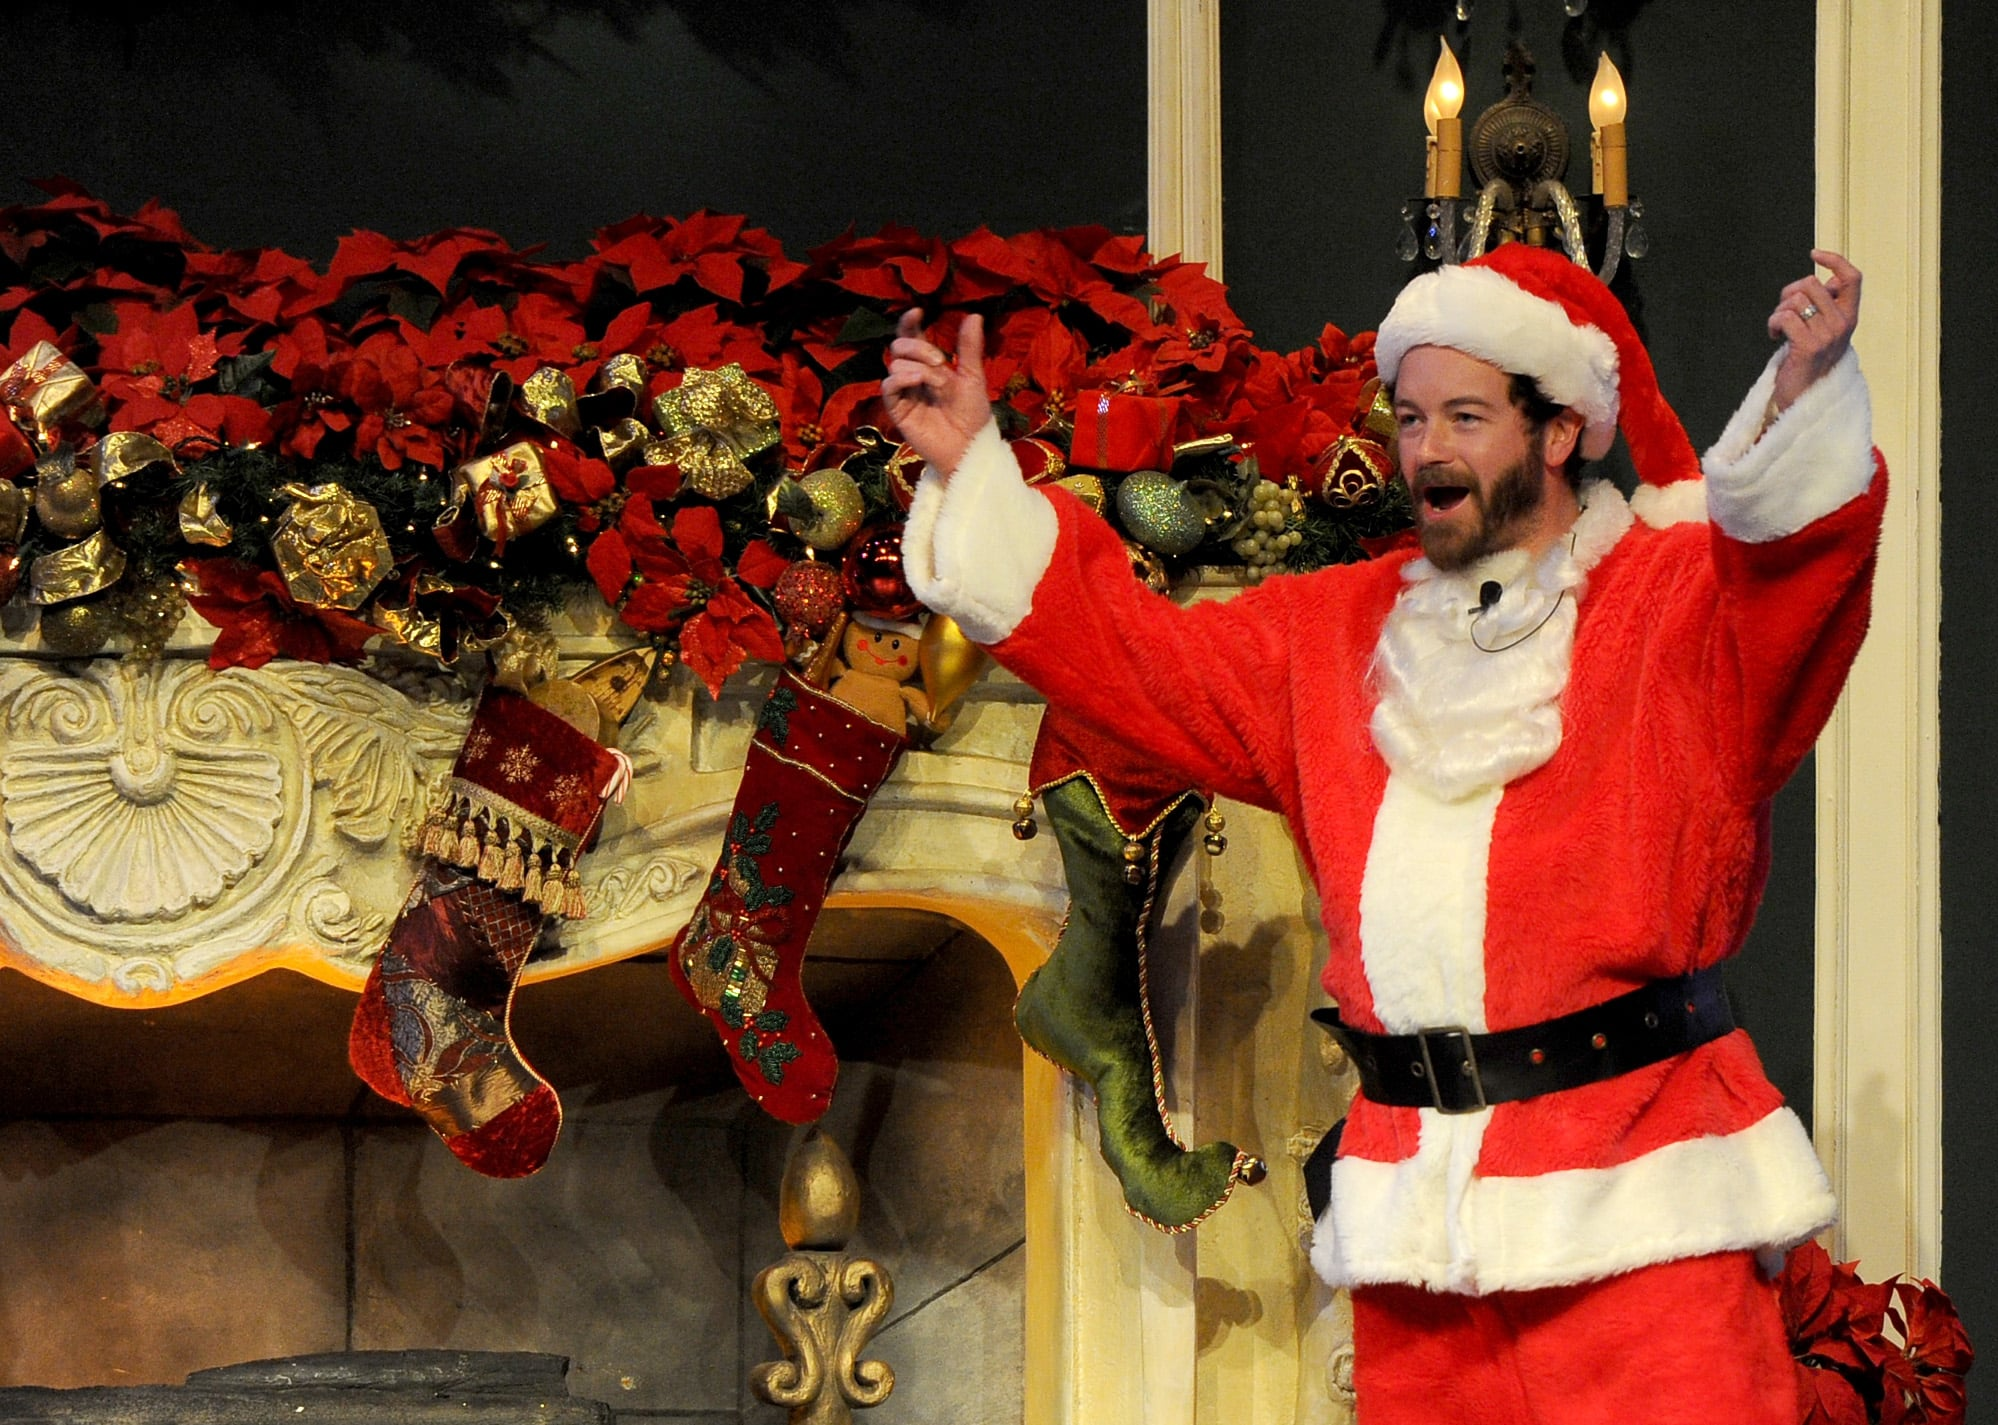 Danny Masterson played a beardless Santa at the Church of Scientology's Christmas stories event in LA.